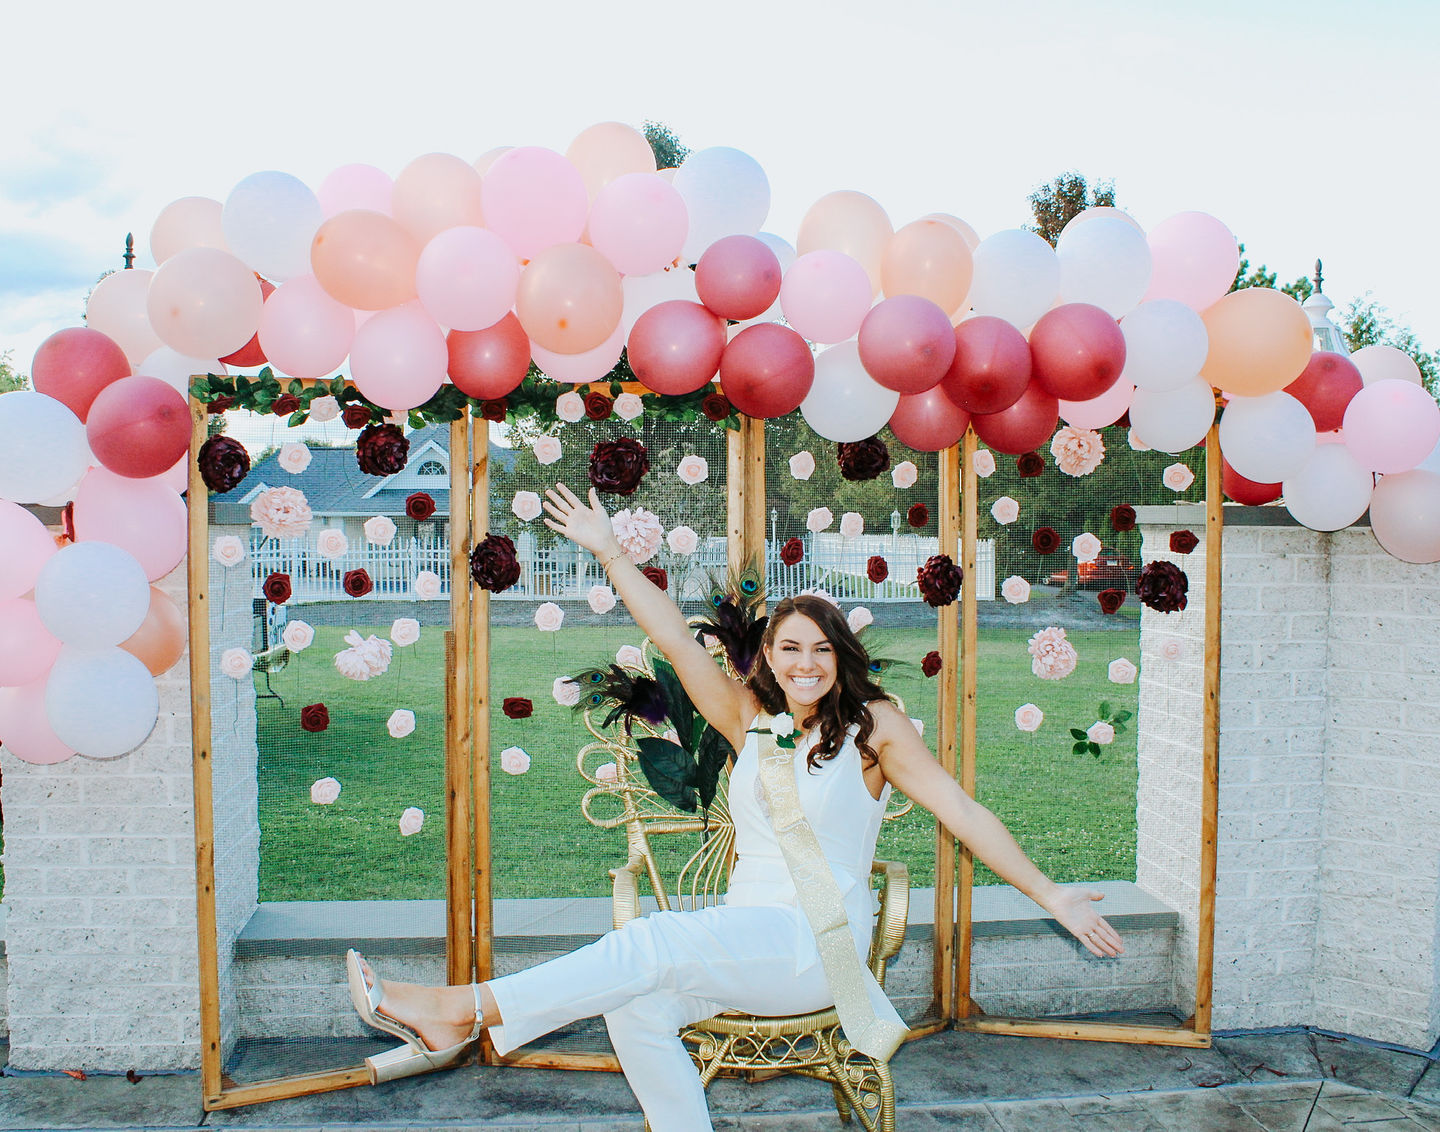 Bride celebrating at her bachelorette party in a white bridal jumpsuit